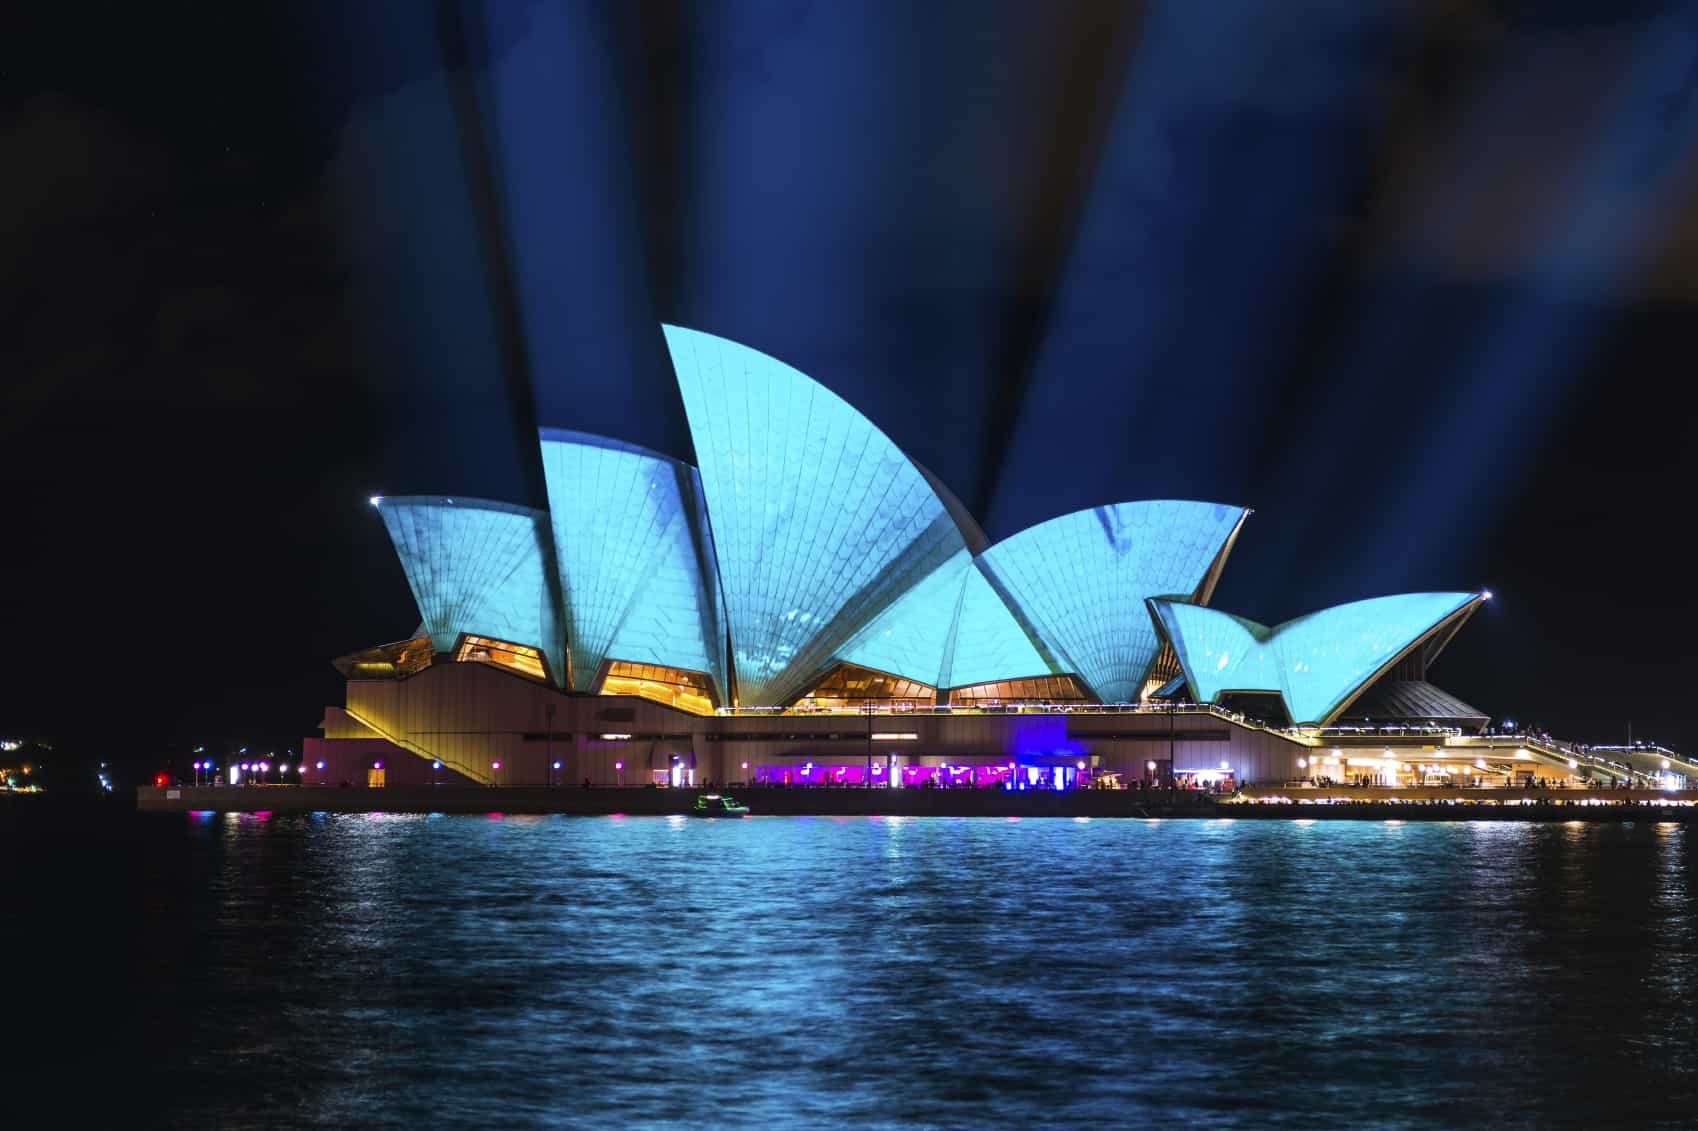 Sydney Opera House shown during Vivid Sydney: A Festival of Light, Music & Ideas in Sydney, Australia.